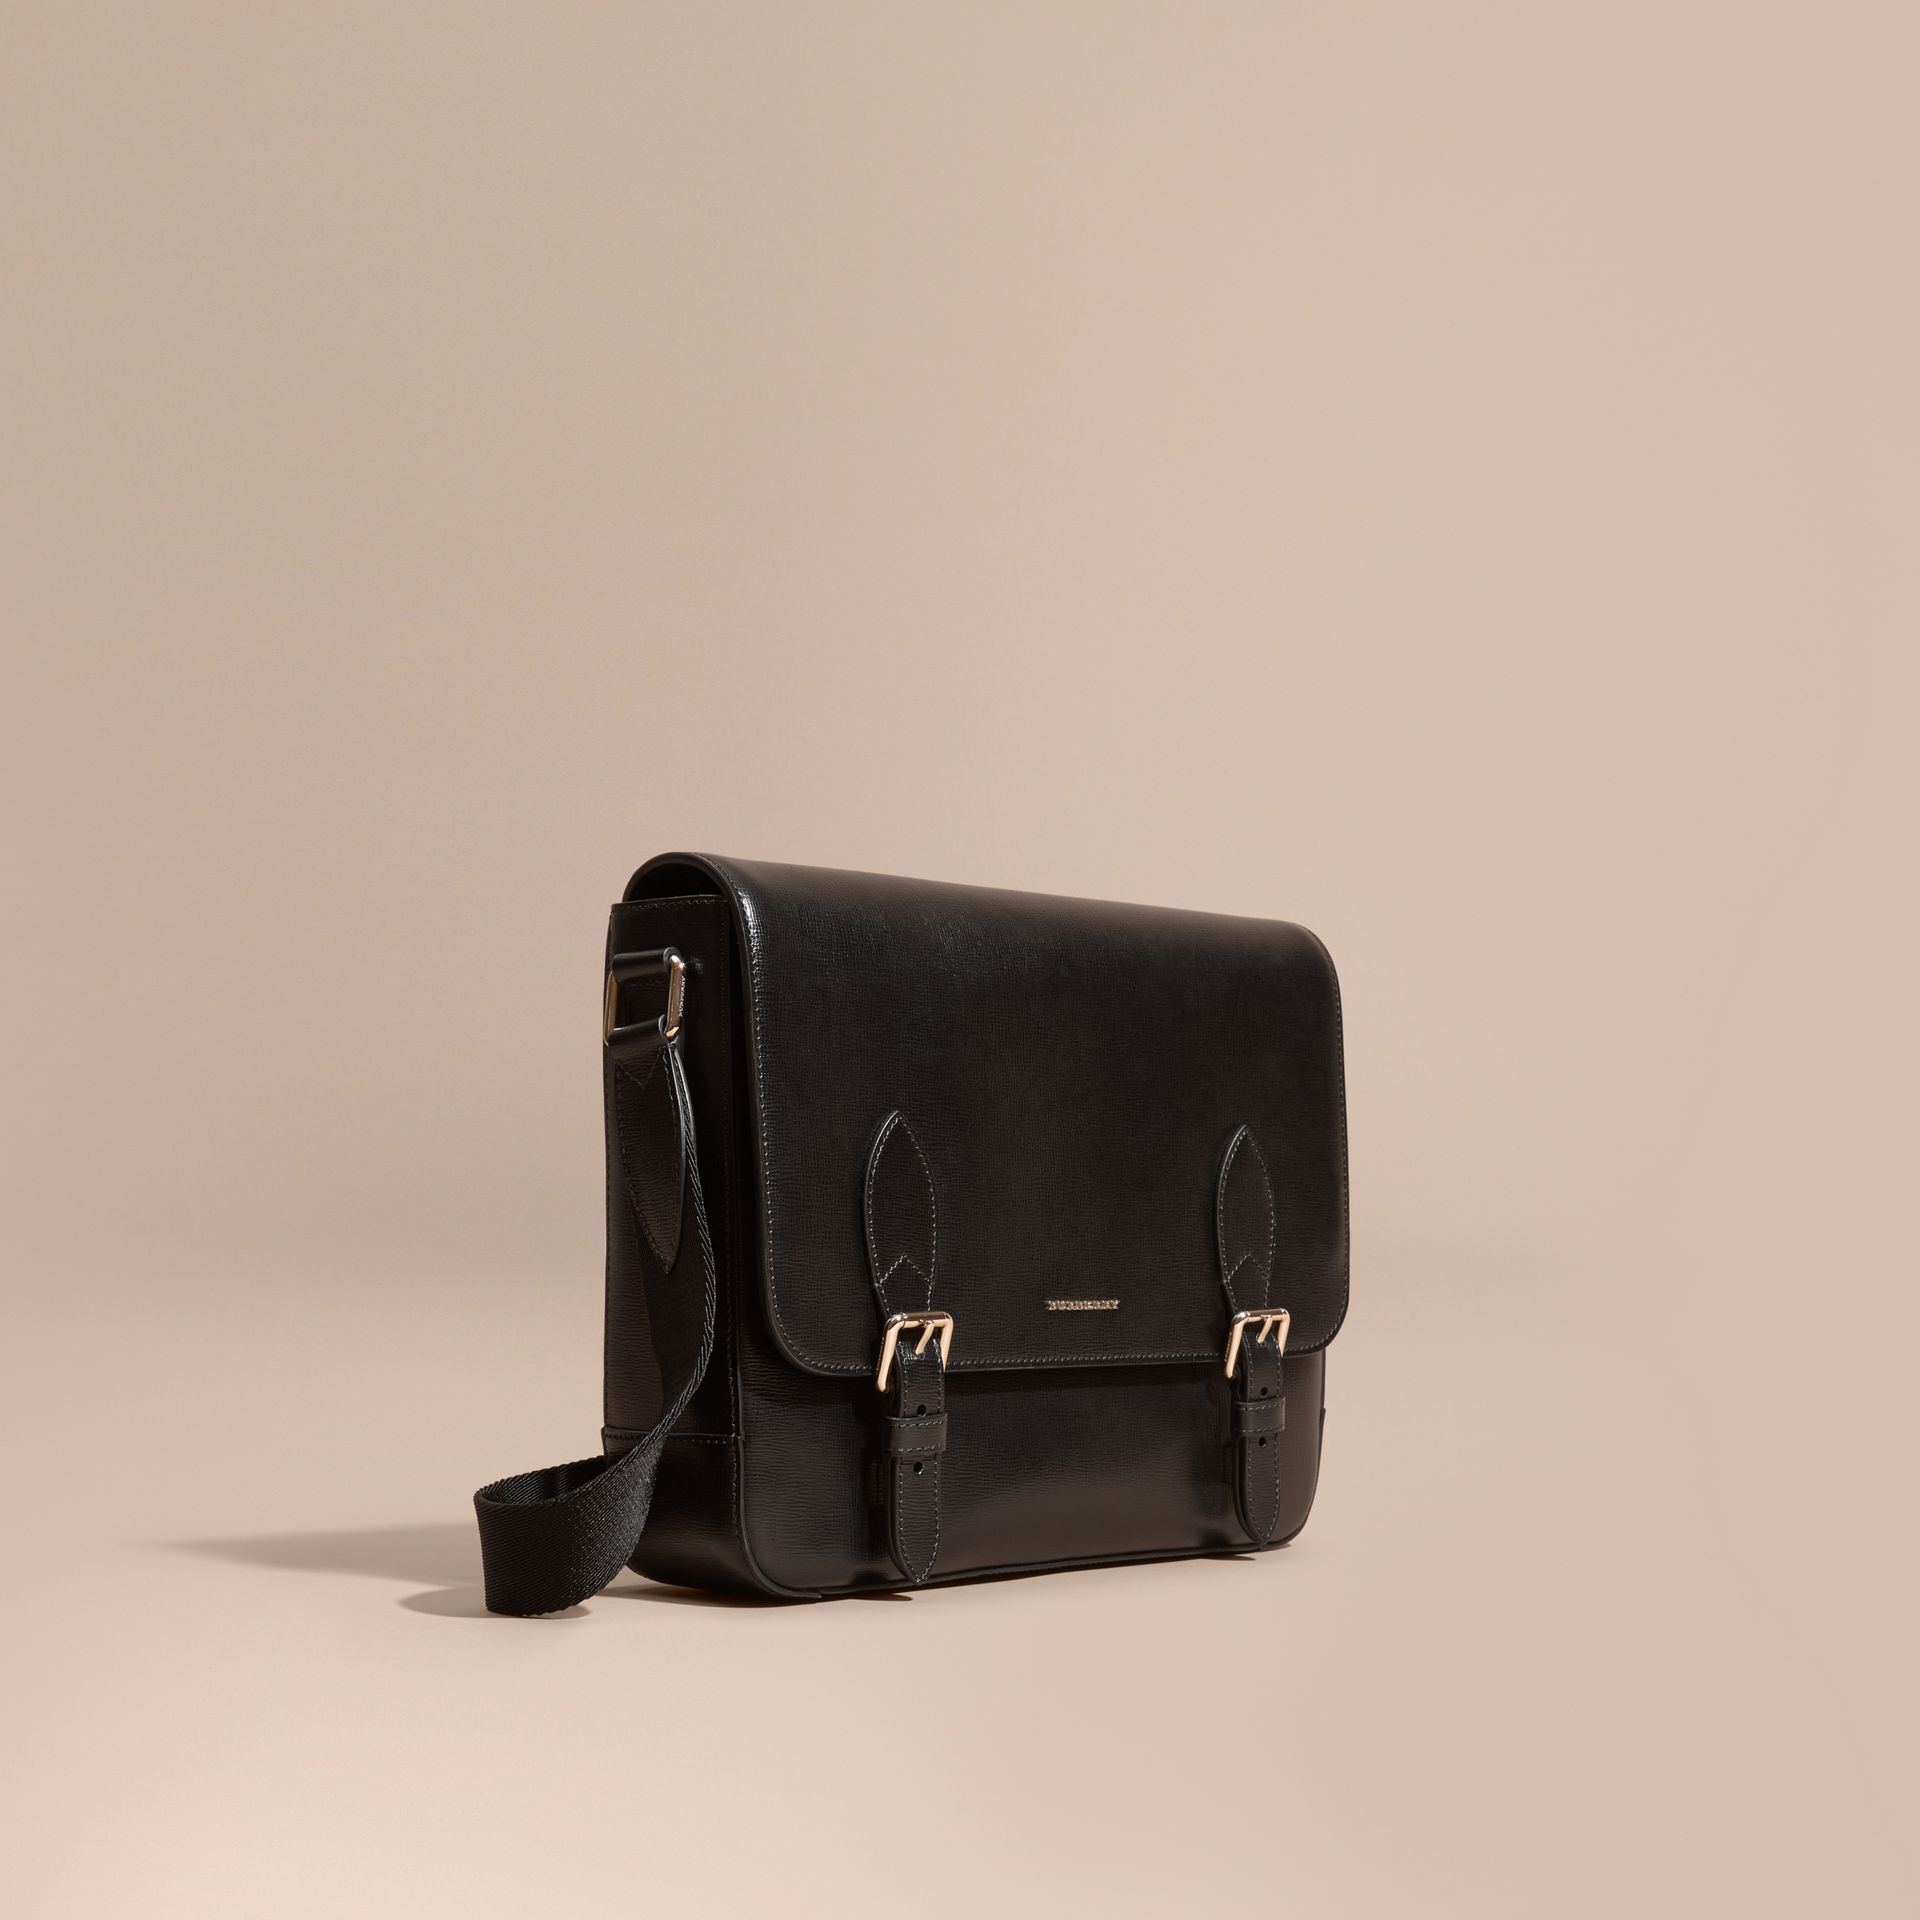 Medium London Leather Messenger Bag Black - gallery image 1